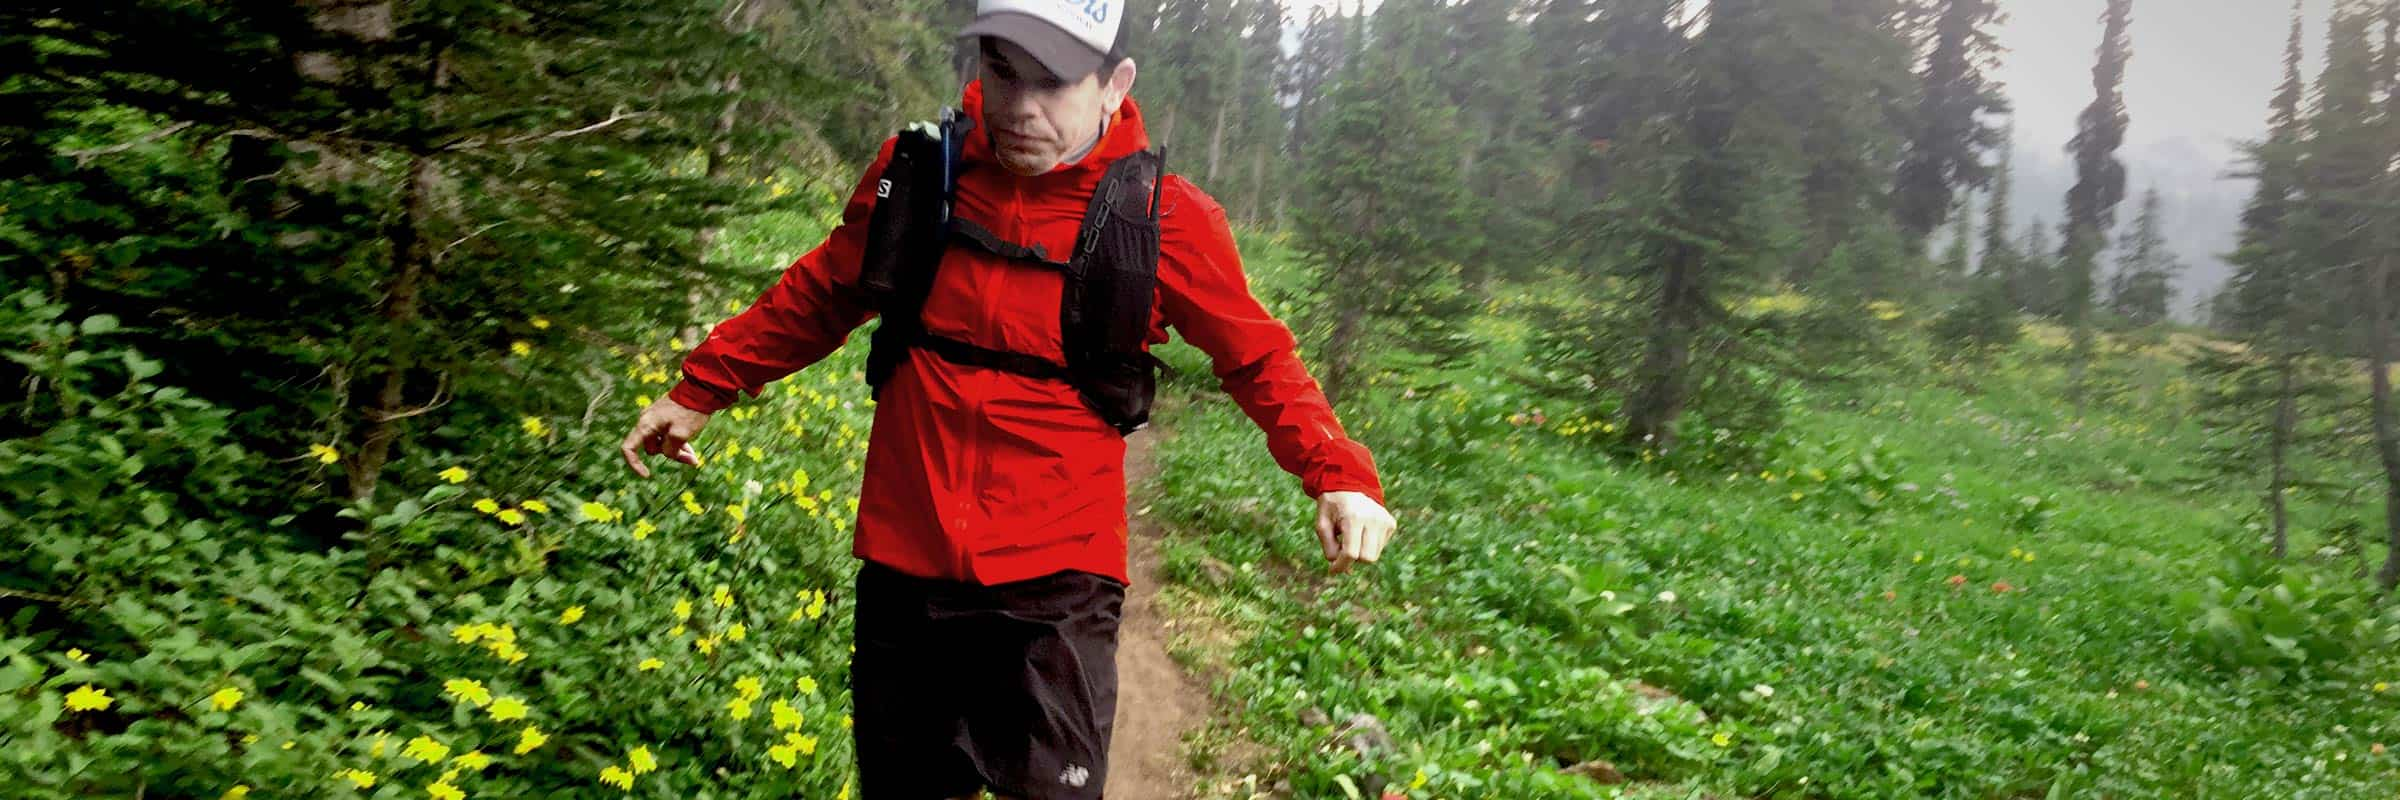 Arc'teryx Norvan Jacket Reviewed